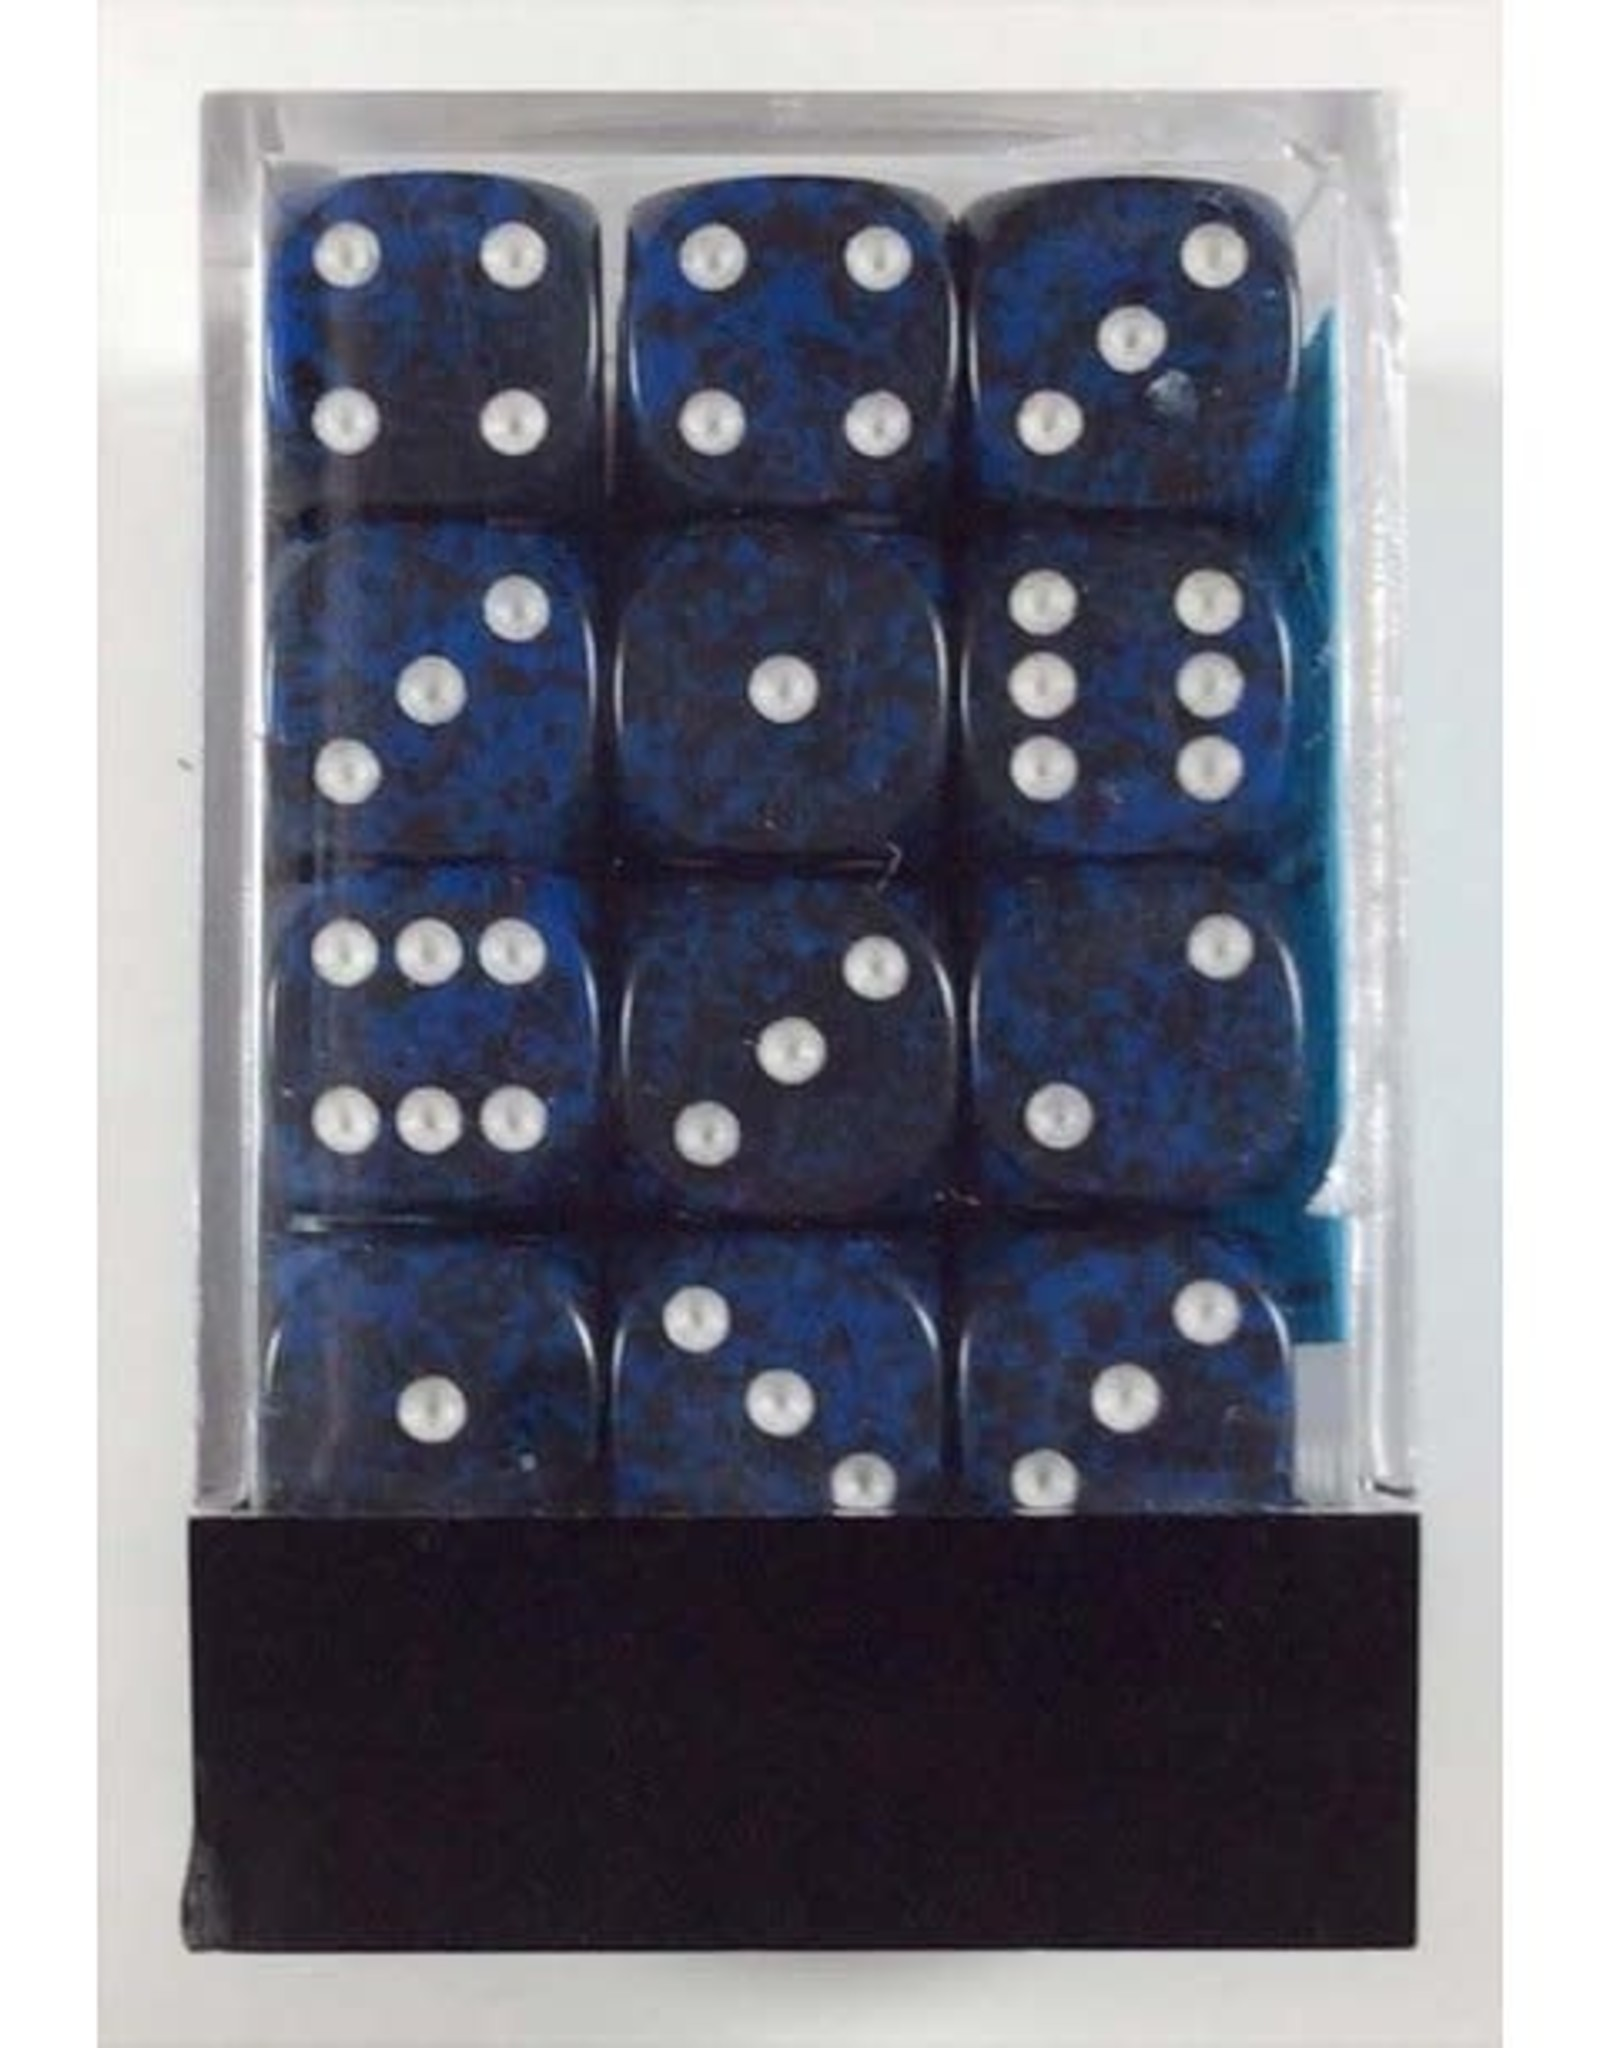 Chessex chessex 12mm d6 speckled stealth dice block - set of 36